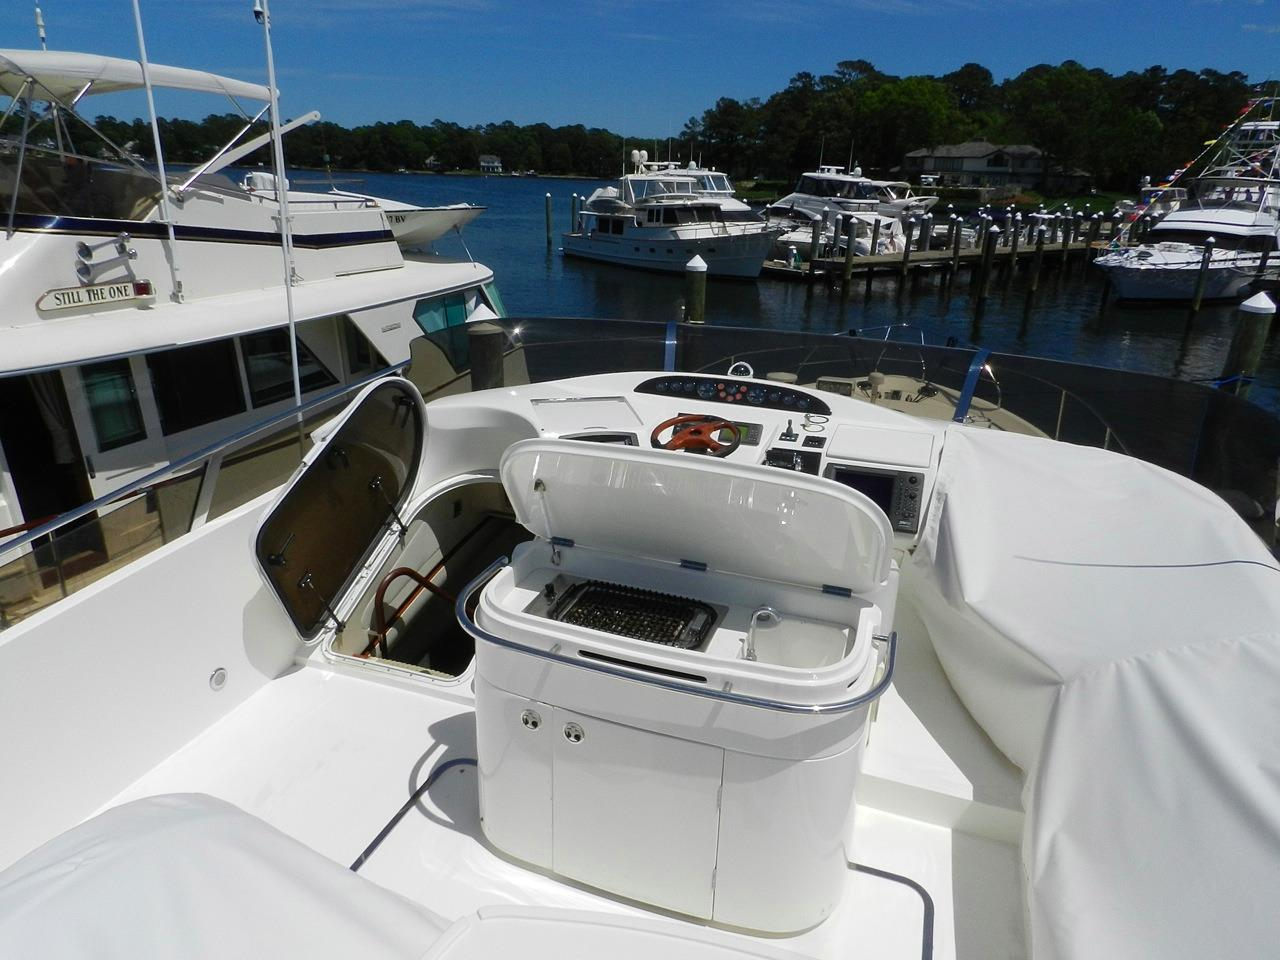 Viking Princess 61 Flubridge Sink/Grill